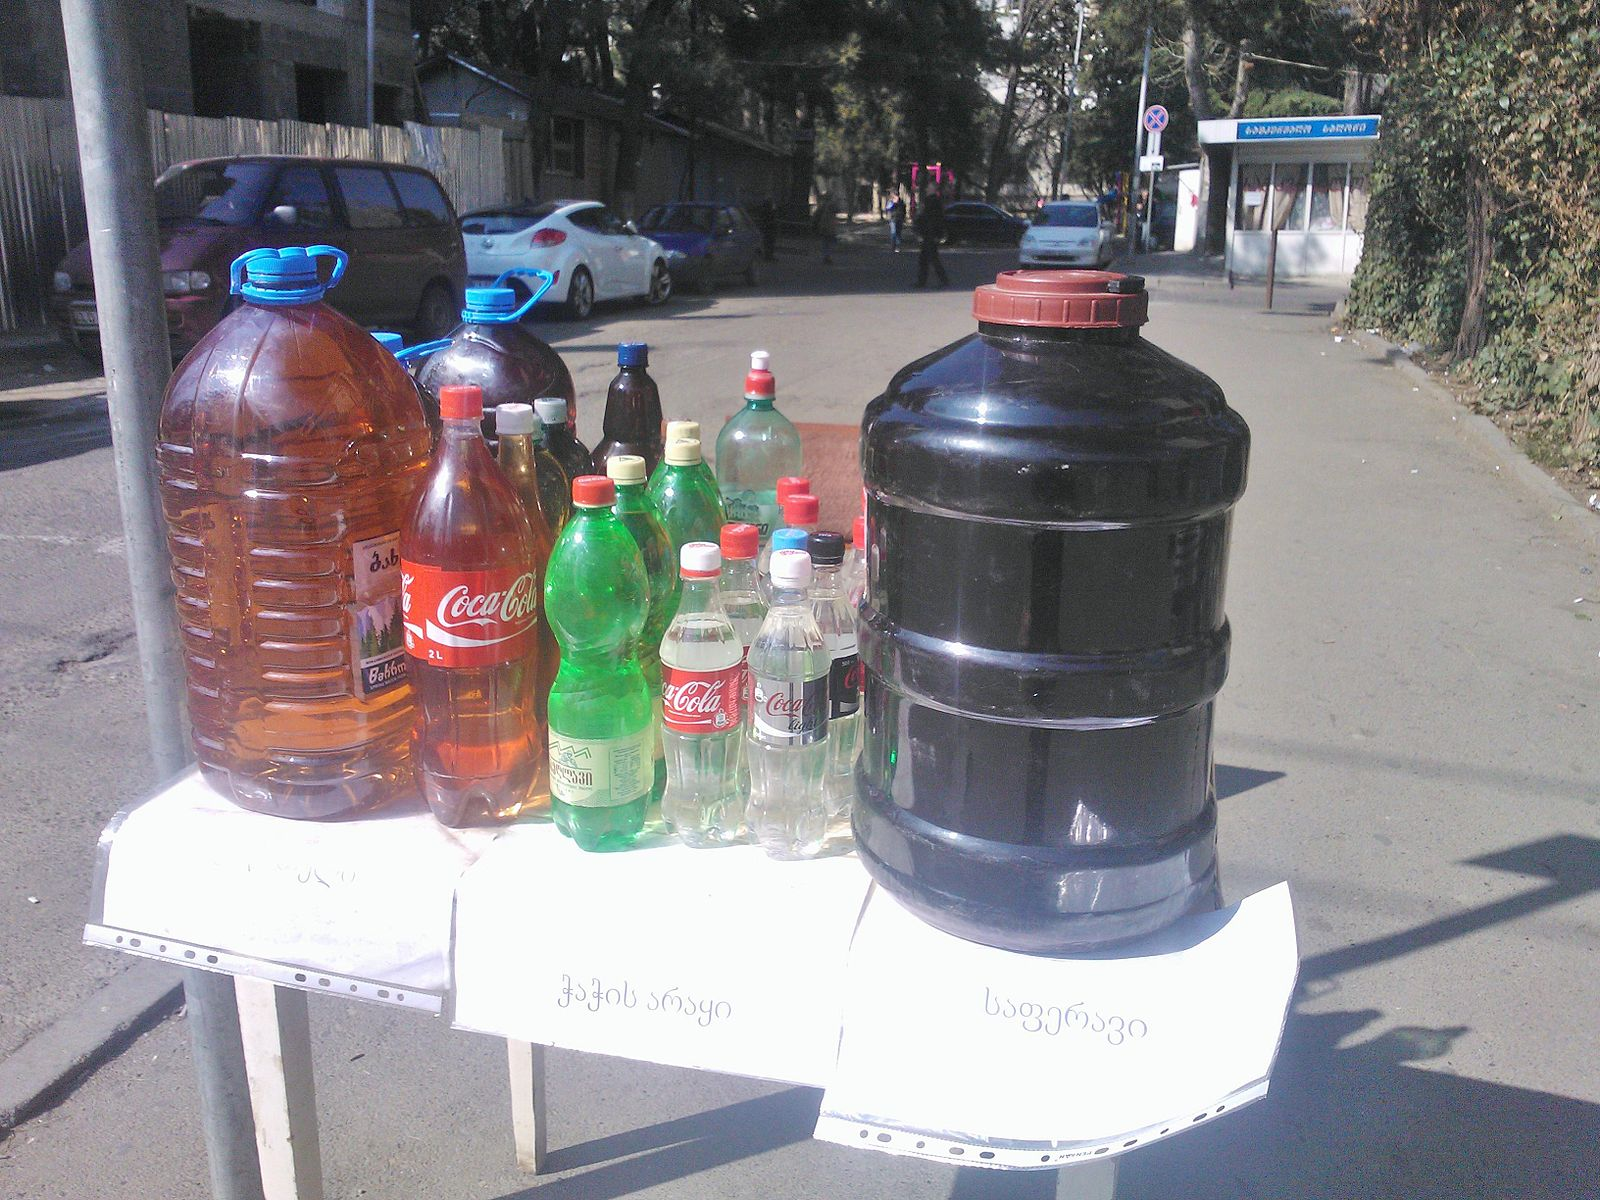 Home distilled chacha (in the middle bottles) and wine being sold in totally legit, not-at-all-dodgy bottles on the street in Tbilisi. Photo by Wikimedia Commons user Daniel-TBS.